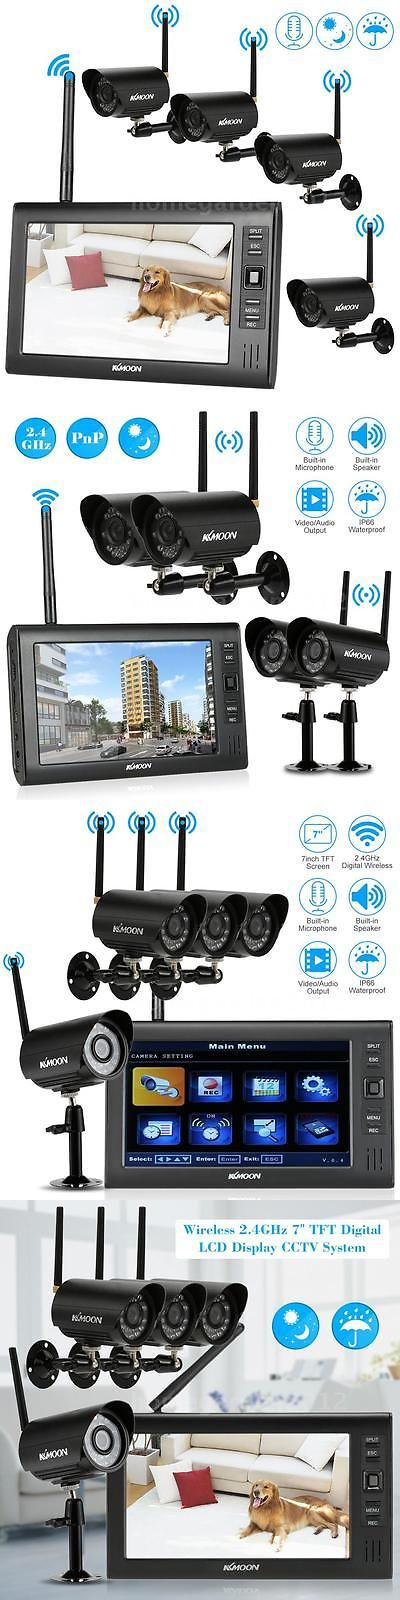 Wireless 66738: 7 Tft Lcd Wireless Cctv Dvr Monitor Home Security Cctv Video System Camera T9v5 -> BUY IT NOW ONLY: $161.15 on eBay!